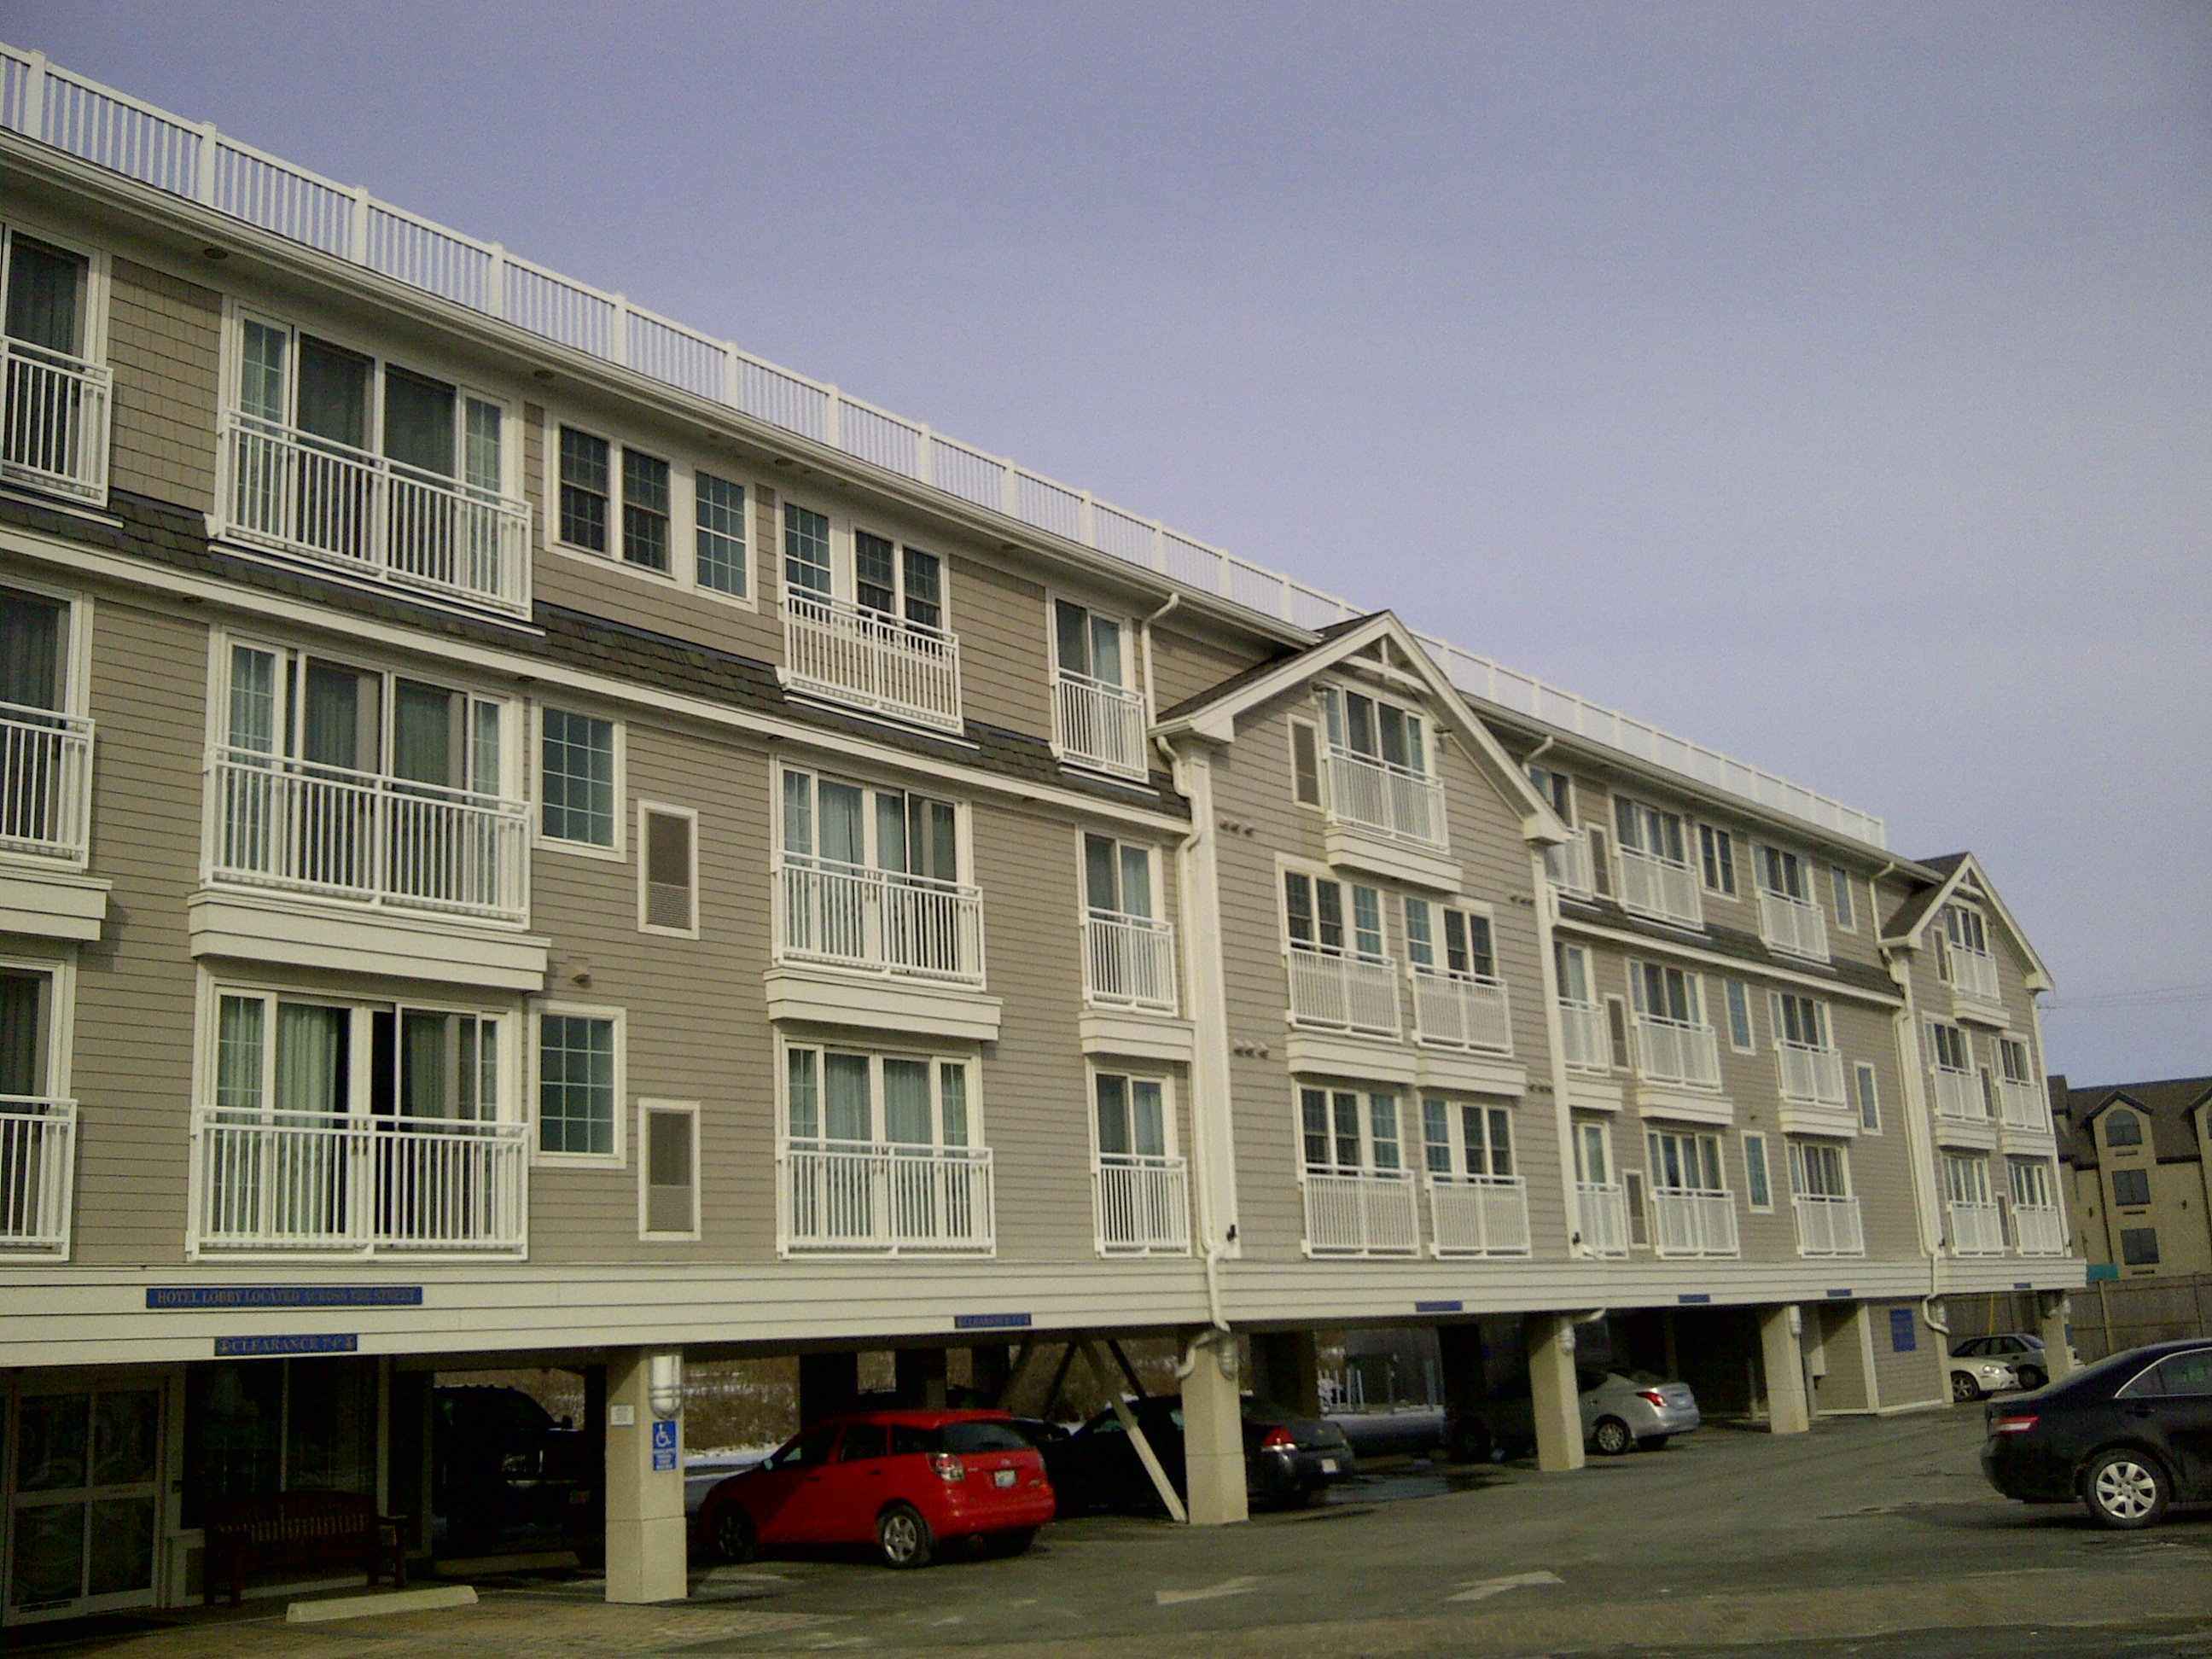 Commercial Gutters Installed On The Newport Beach Hotel